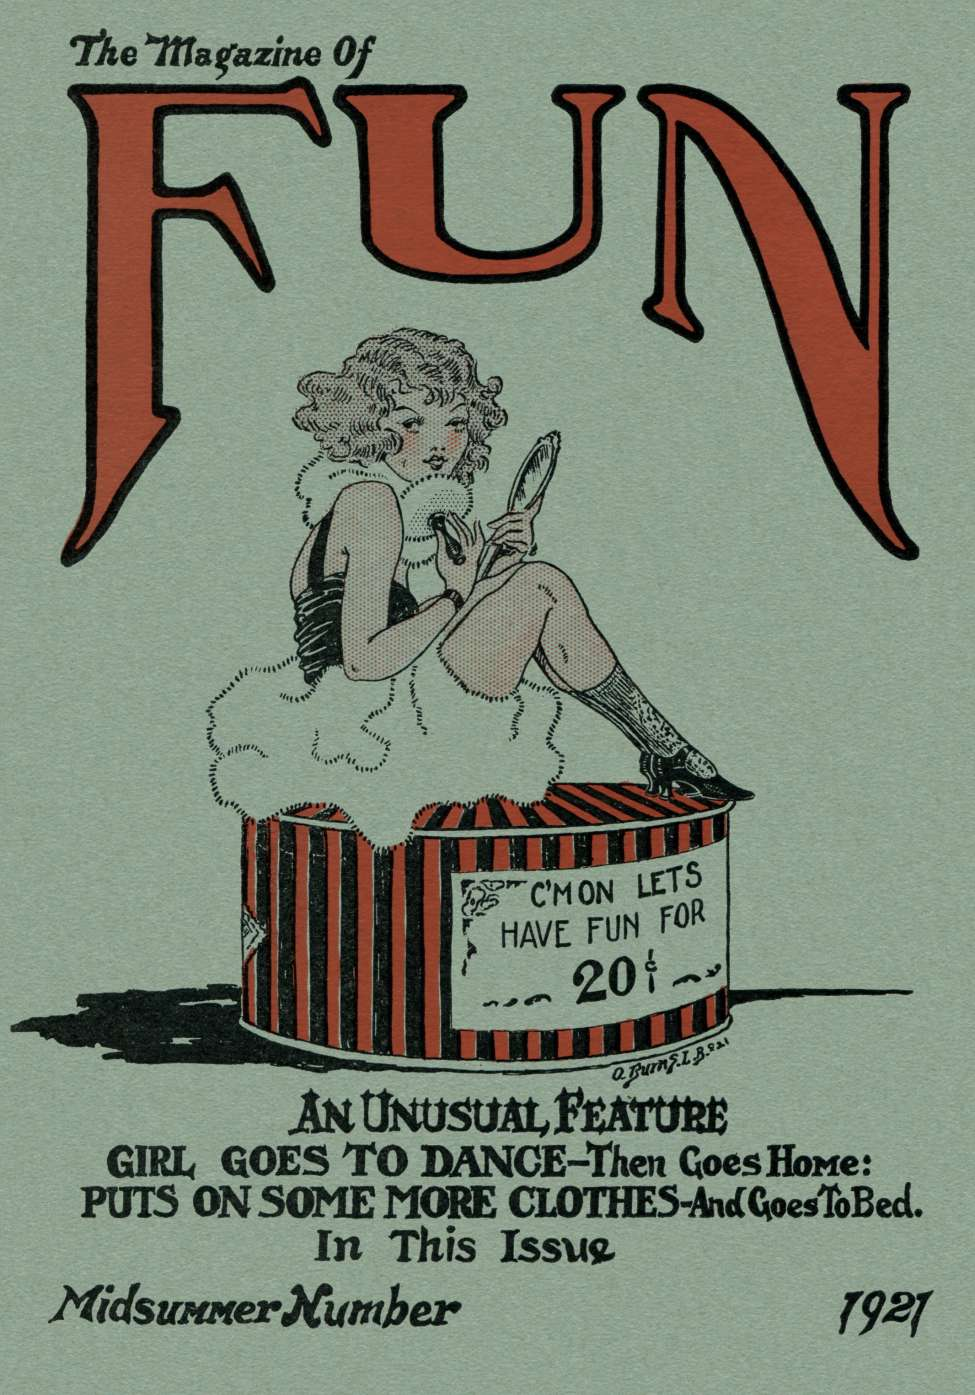 Comic Book Cover For The Magazine Of Fun v01 01